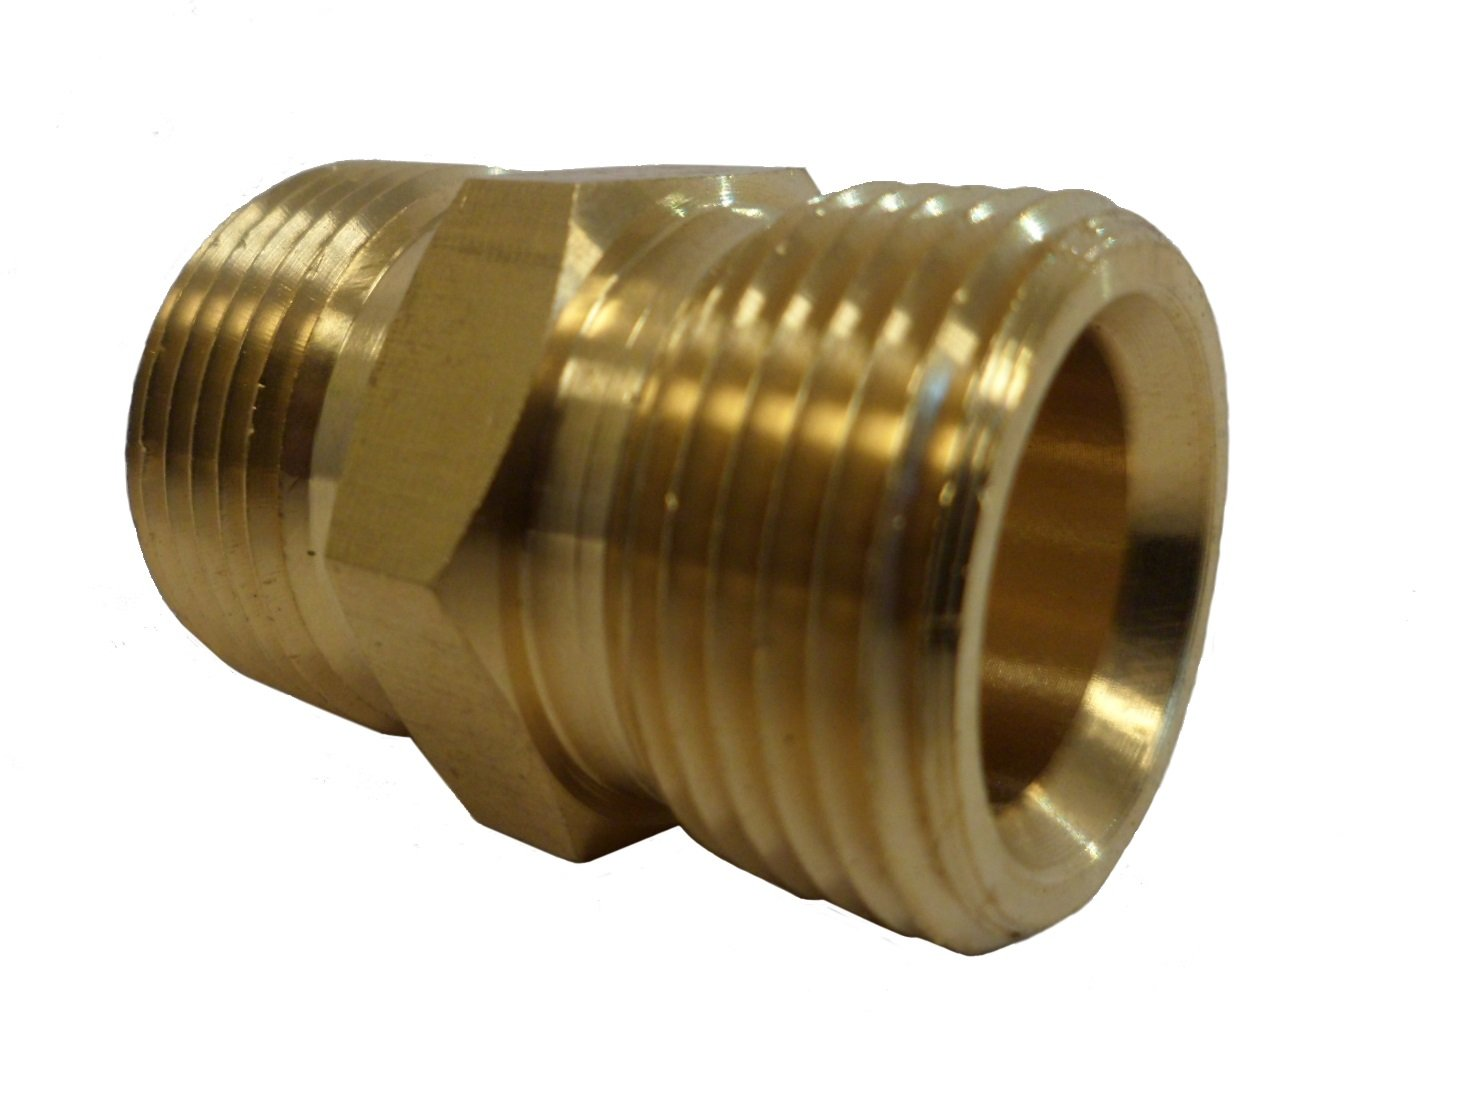 Amazon.com: M22 Male to M22 Male 15mm Adapter, Hose to Hose Coupler ...